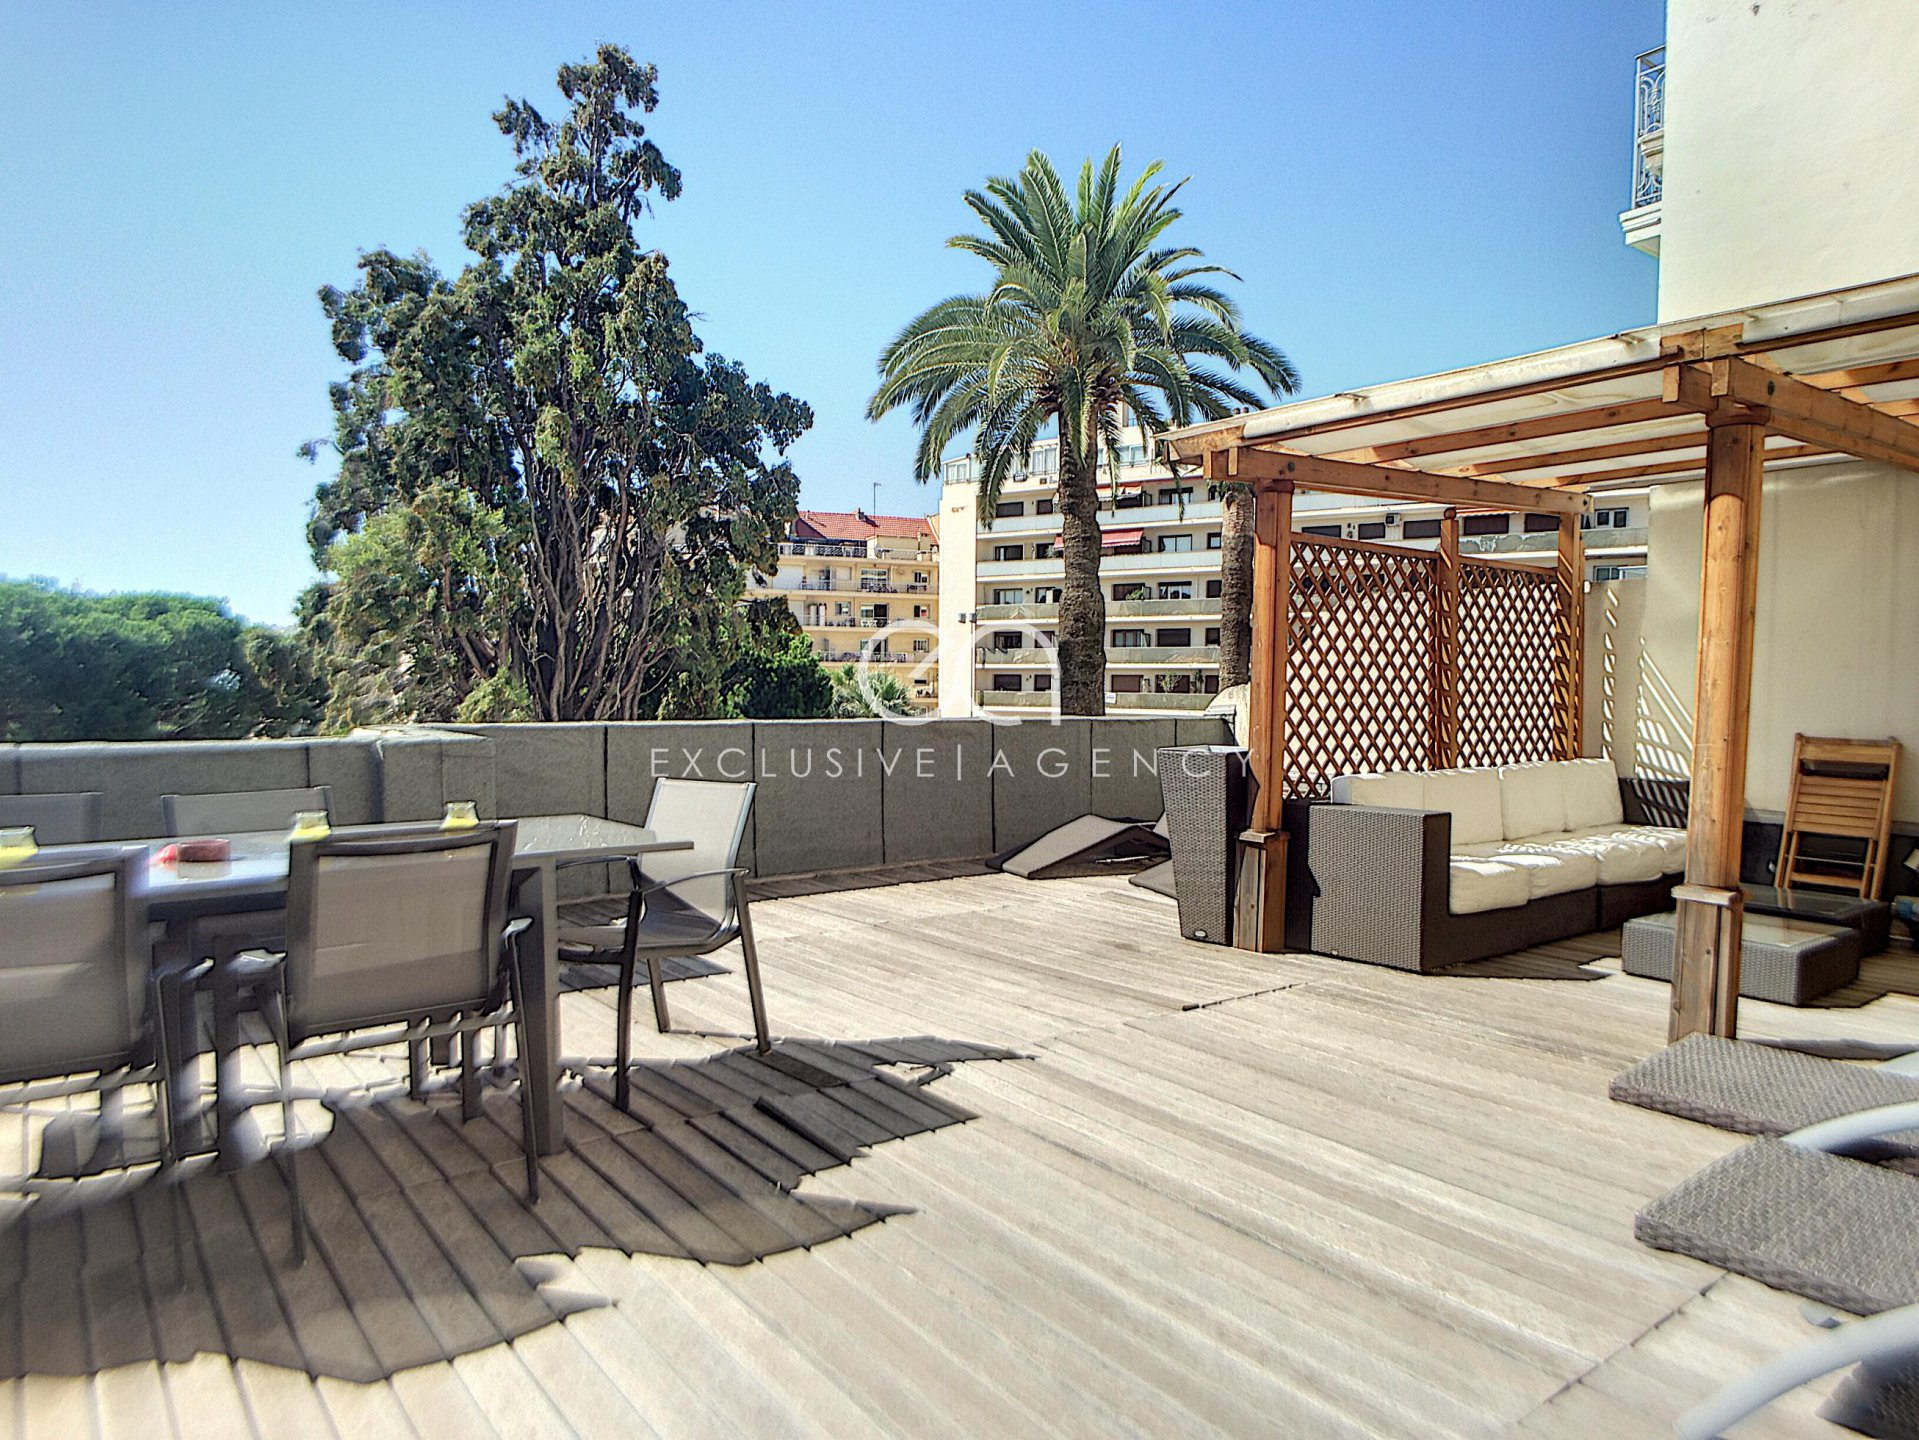 Apartment for sale Cannes Banane 65sqm terrace 60sqm